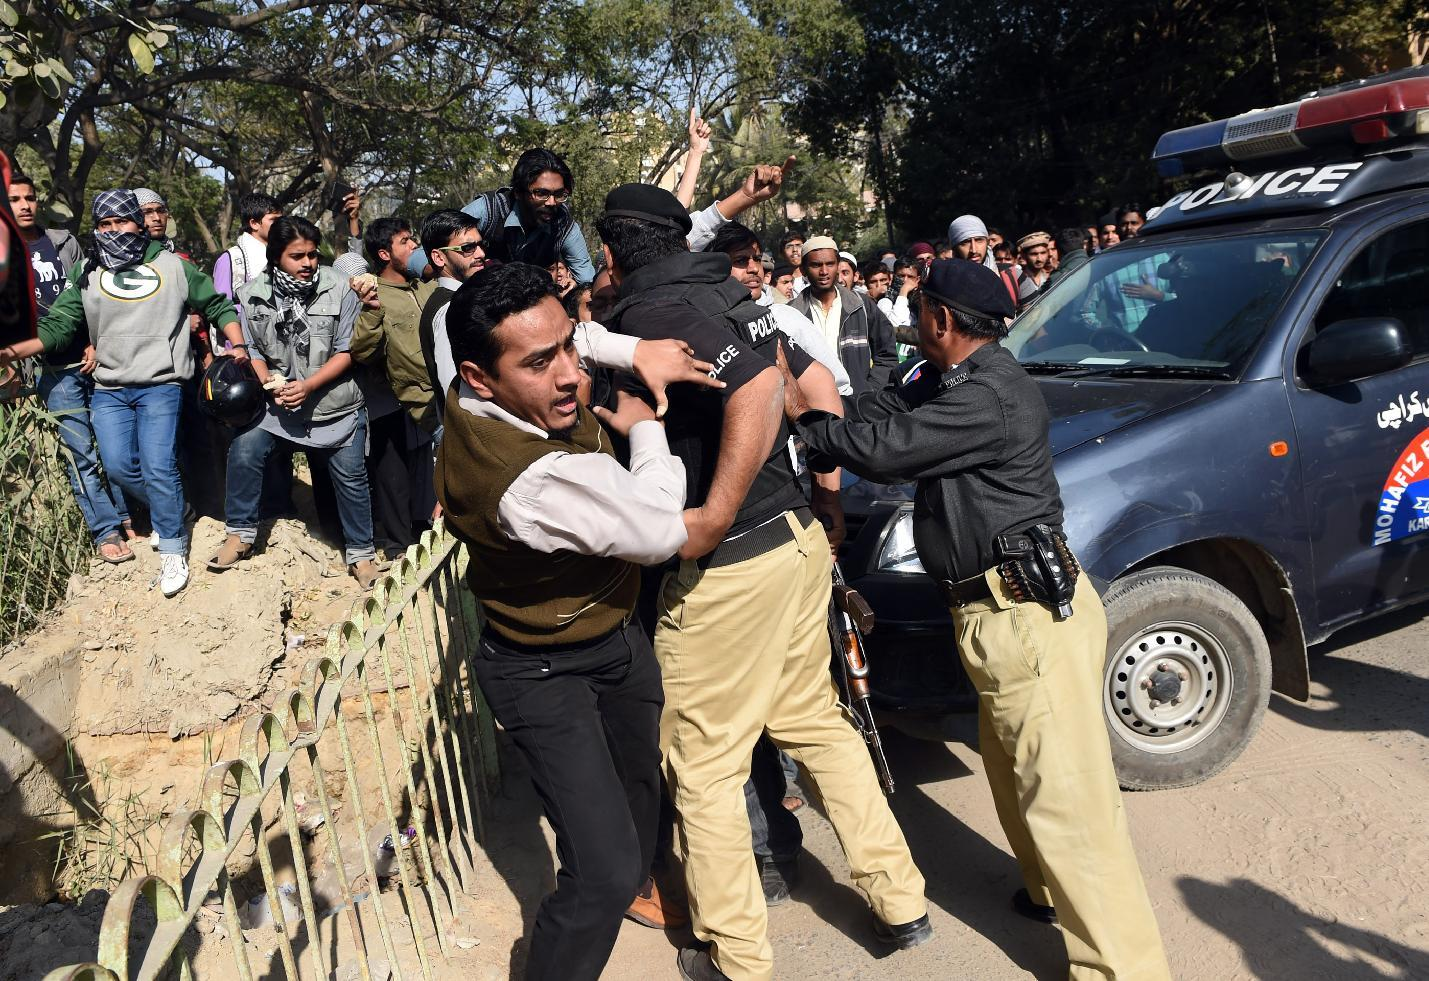 Police try to stop activists of the Jamaat-e-Islami religious party during a protest against the printing of satirical sketches of the Prophet Muhammad by French magazine Charlie Hebdo, near the French consulate in Karachi, on January 16, 2015 (AFP Photo/Asif Hassan)